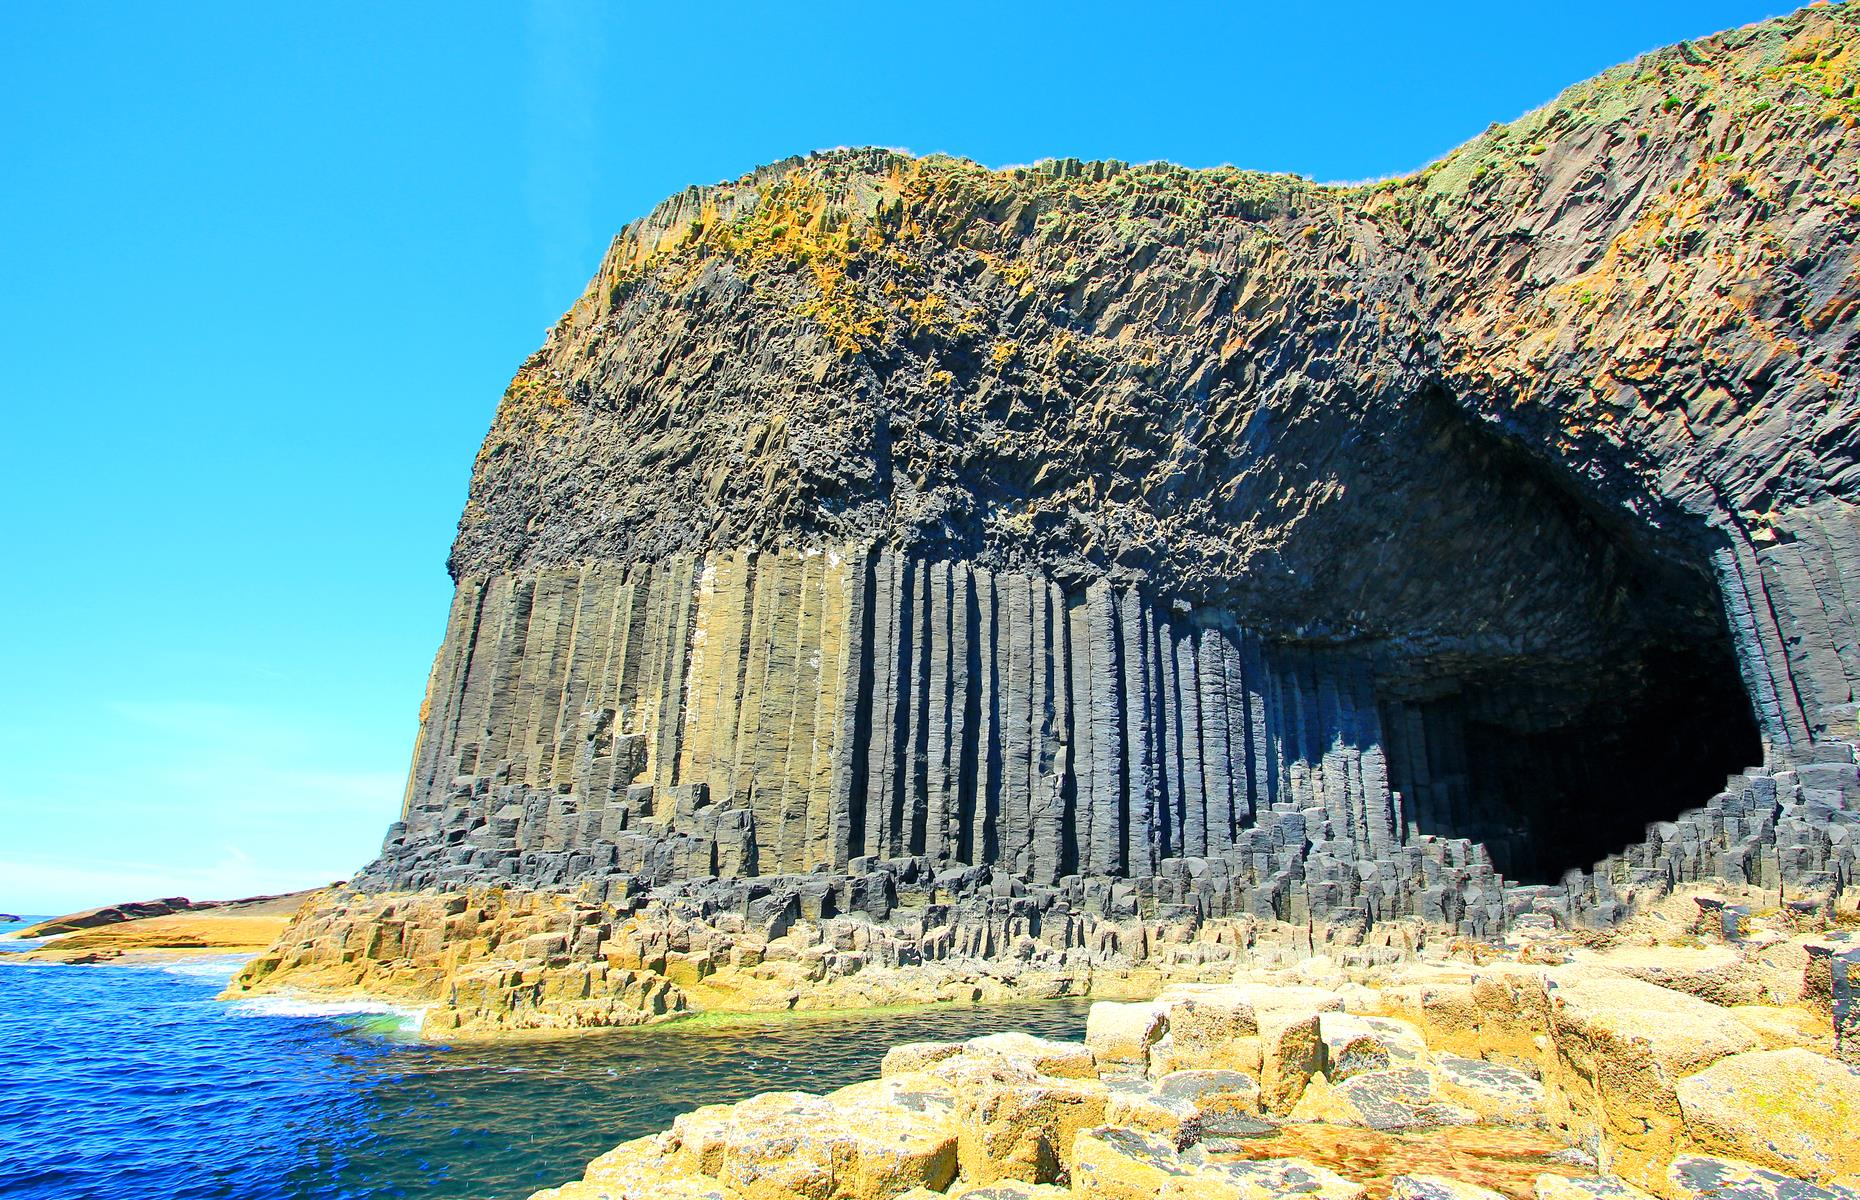 Slide 31 of 41: A volcanic wonder on the Isle of Staffa, Fingal's Cave is formed of neat, hexagonal, basalt columns that look like they've been carefully placed by hand. They're actually the work of Mother Nature, and the very same lava flow that carved out the famed Giant's Causeway across the water. Even so, plenty maintain that this striking sea cave and its Irish cousin were the work of giants.